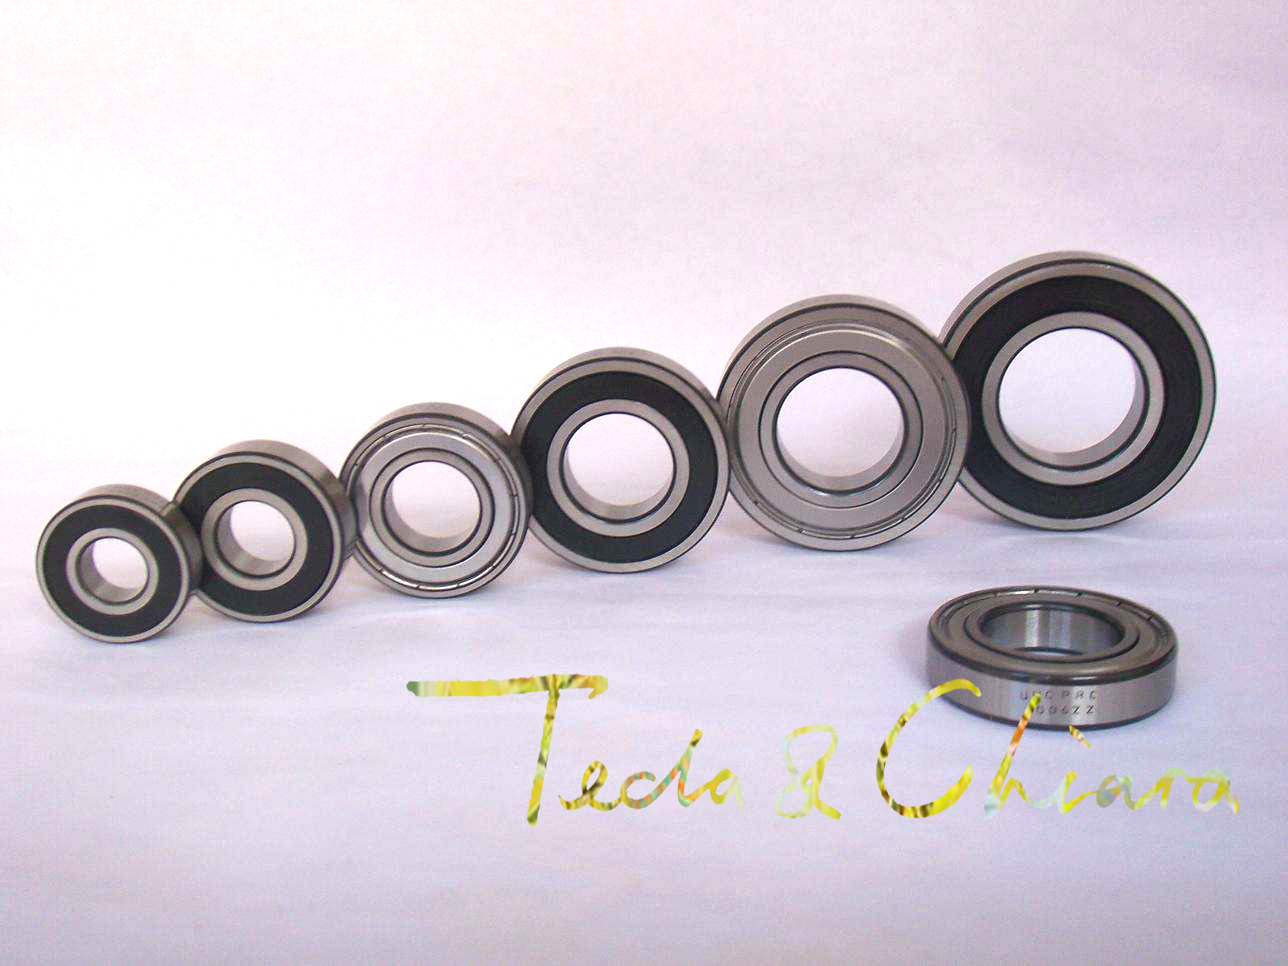 6700 6700ZZ 6700RS 6700-2Z 6700Z 6700-2RS ZZ RS RZ 2RZ Deep Groove Ball Bearings 10 x 15 x 4mm High Quality free shipping 25x47x12mm deep groove ball bearings 6005 zz 2z 6005zz bearing 6005zz 6005 2rs